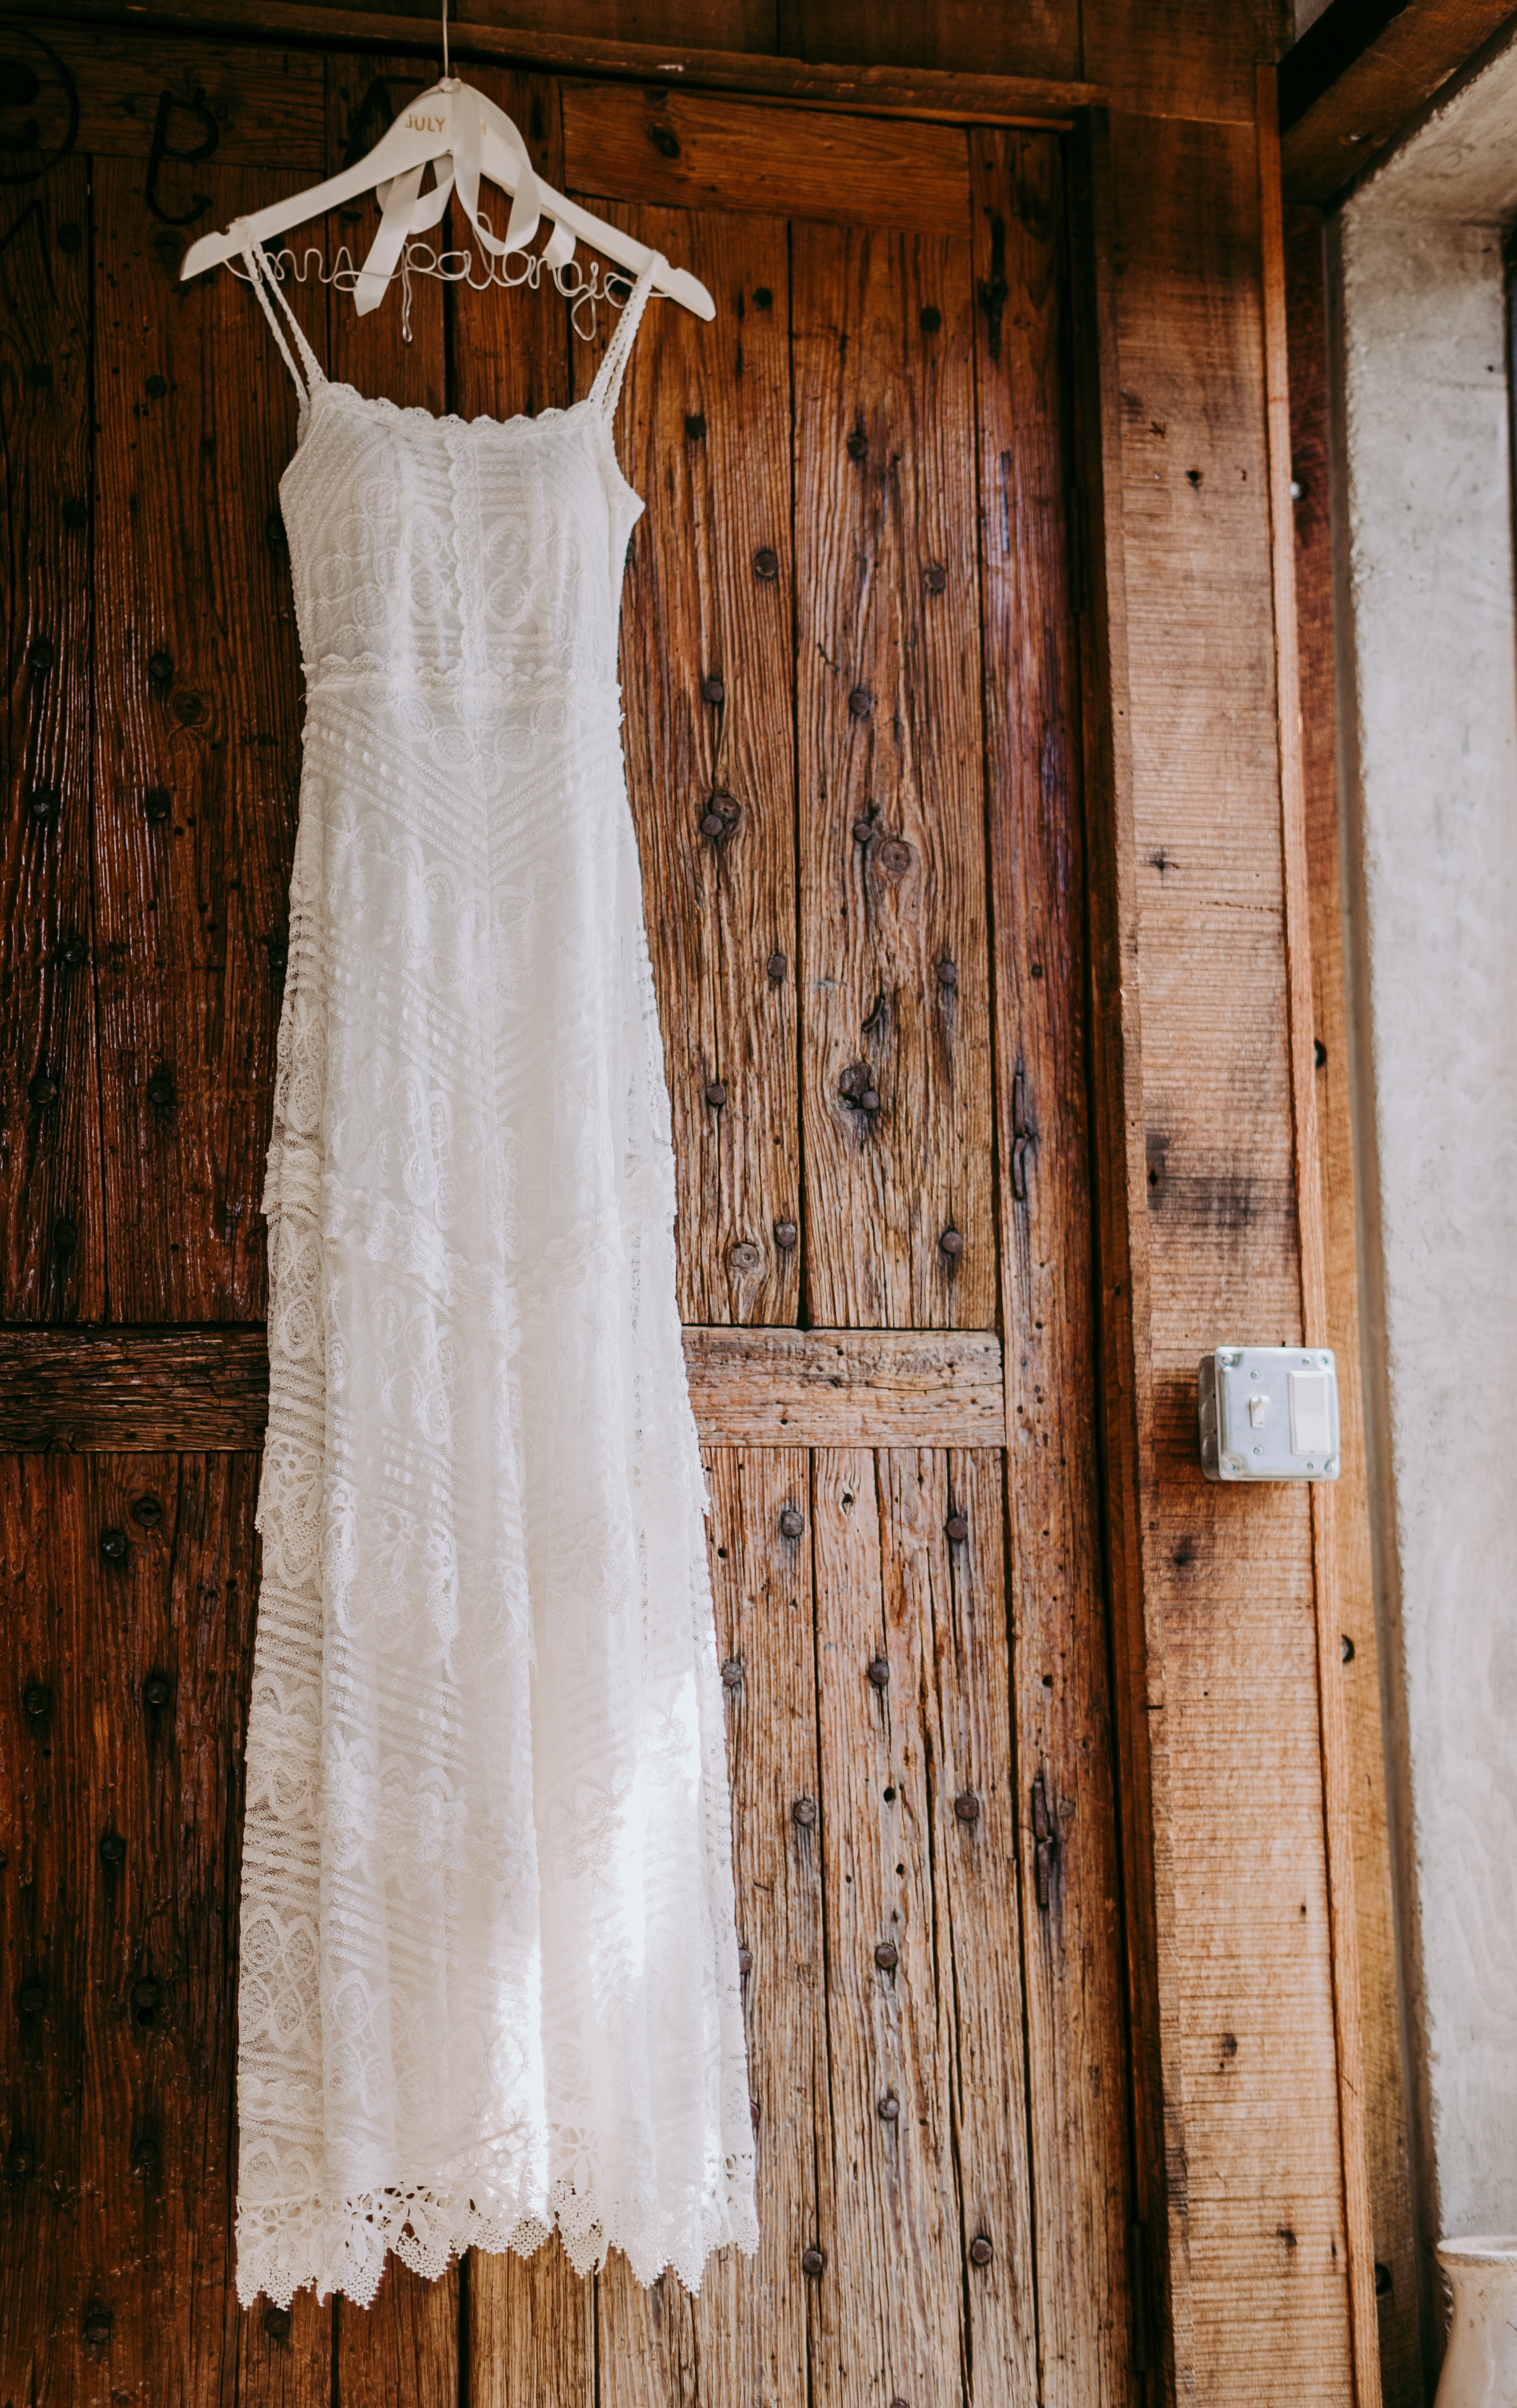 white sleeveless dress near brown wooden door